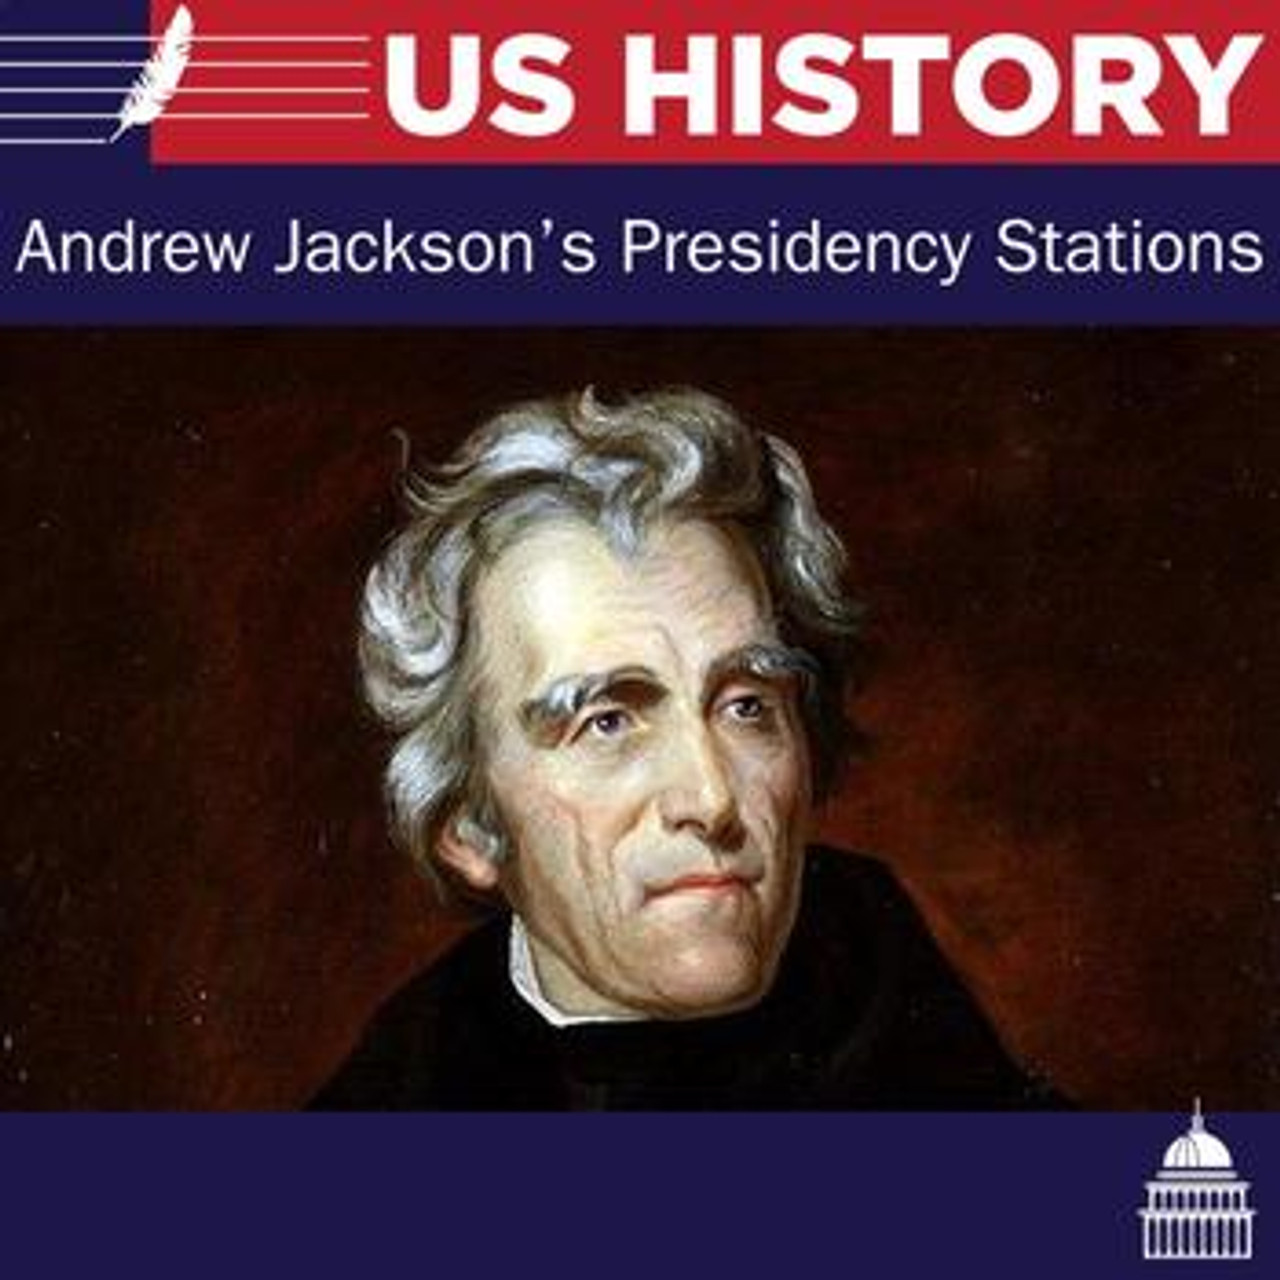 Andrew Jackson Presidency - 6 Stations Lesson - Amped Up Learning [ 1280 x 1280 Pixel ]